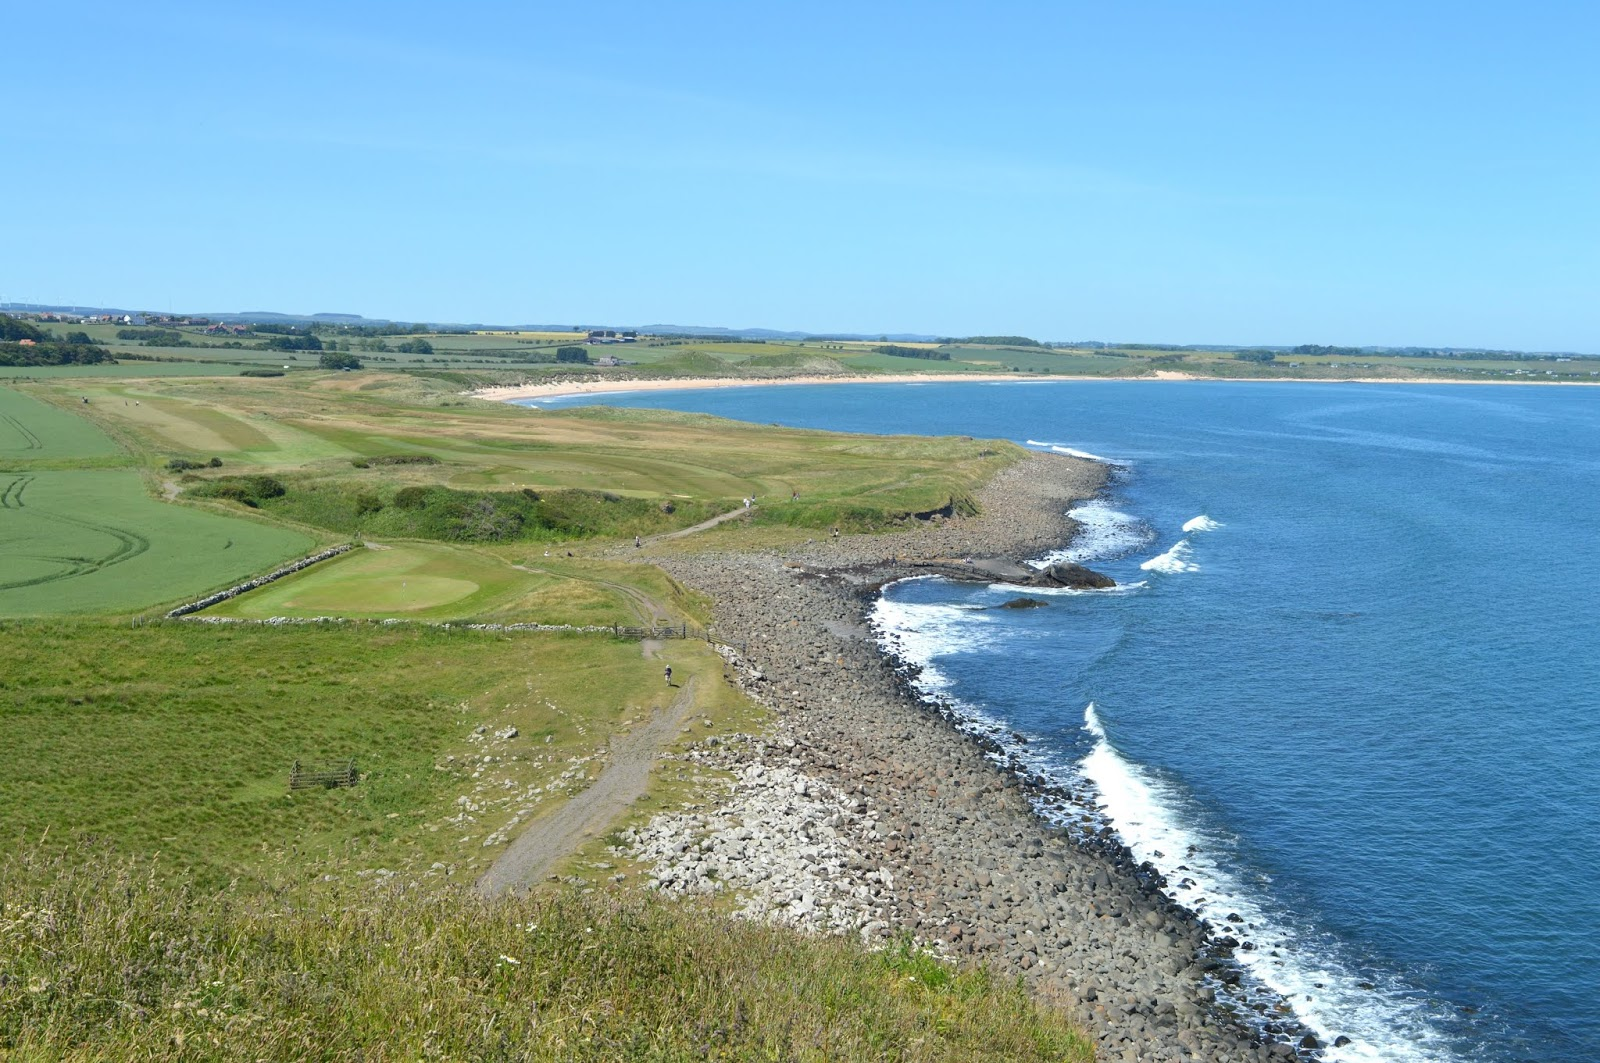 Road Tripping the Northumberland Coastal Route